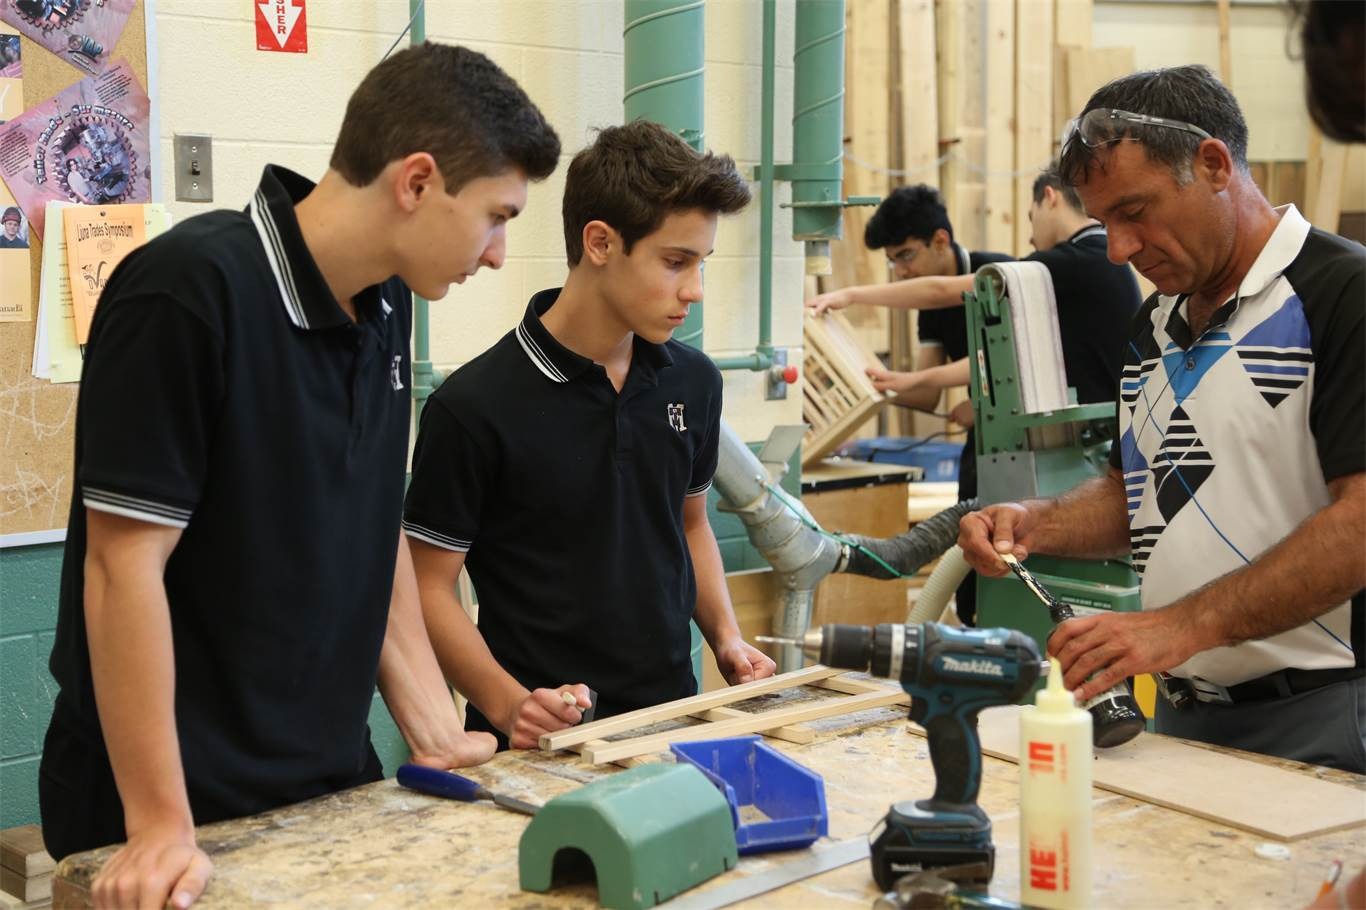 Mr. Antonucci teaching Construction at St. Thomas More Catholic Secondary School